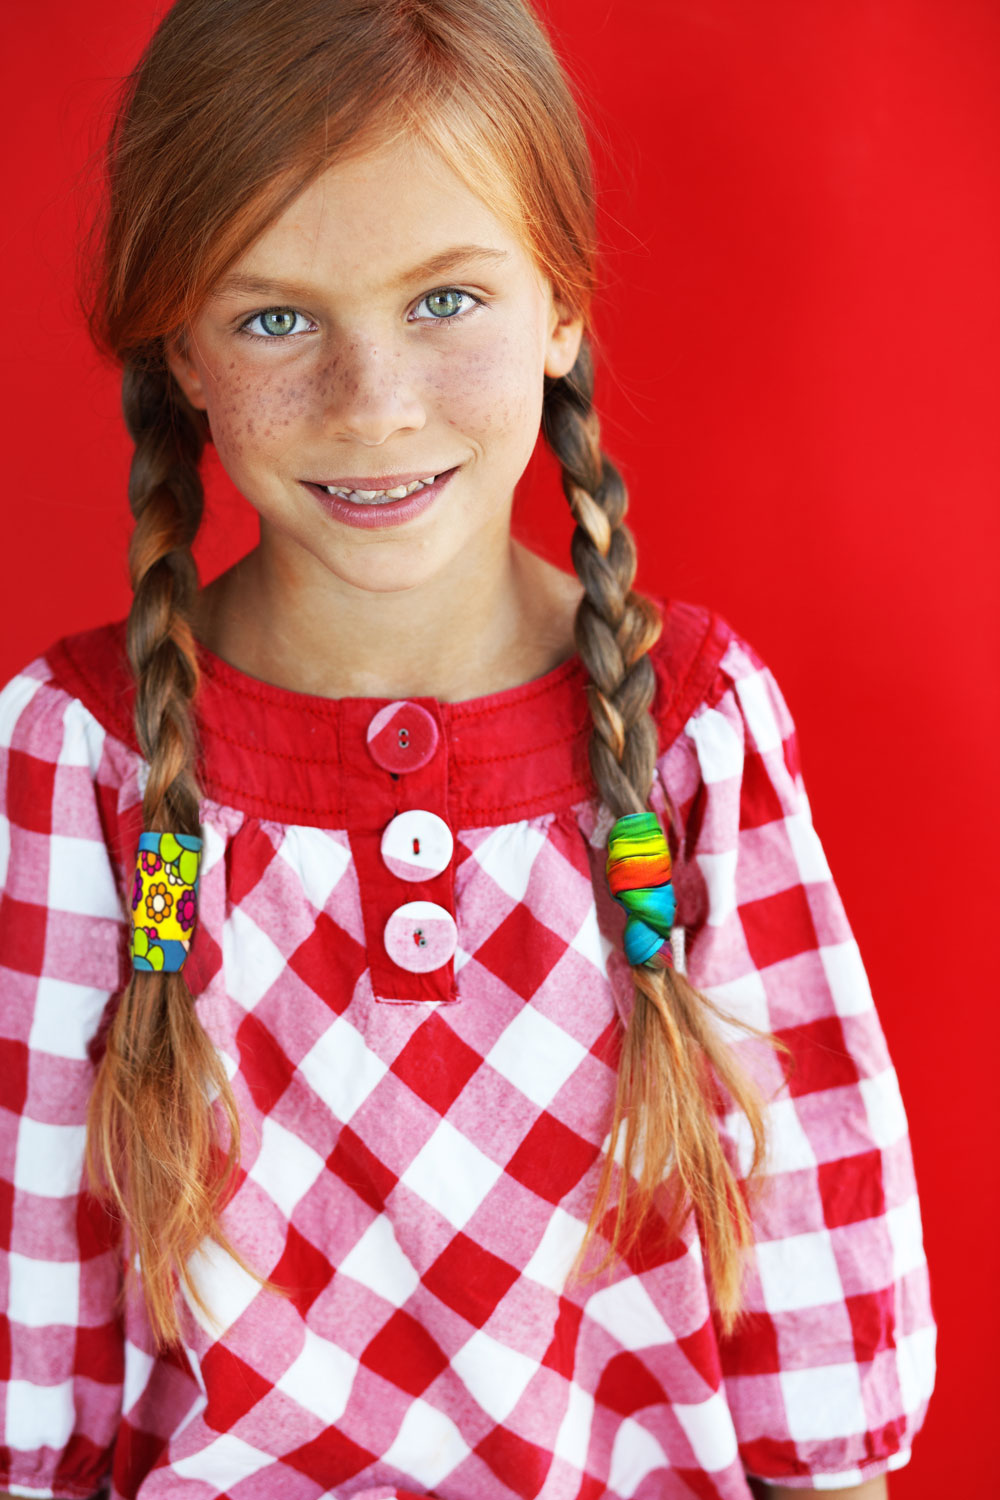 GP-girl-with-Braids-red-background-redhead-for-SS-model-GP-1000-V2.jpg